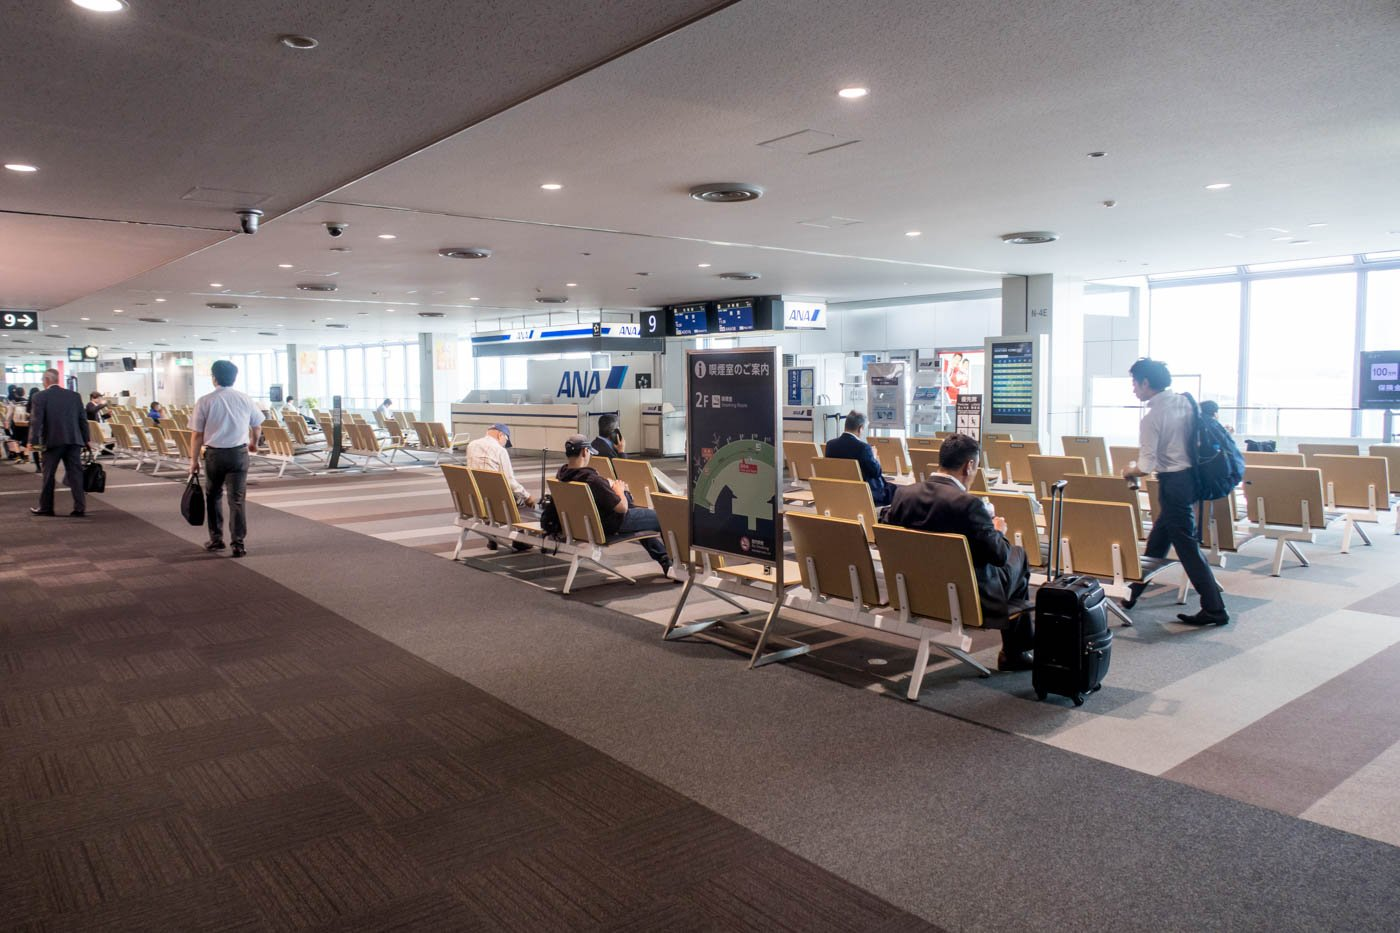 Airside at Sapporo Airport